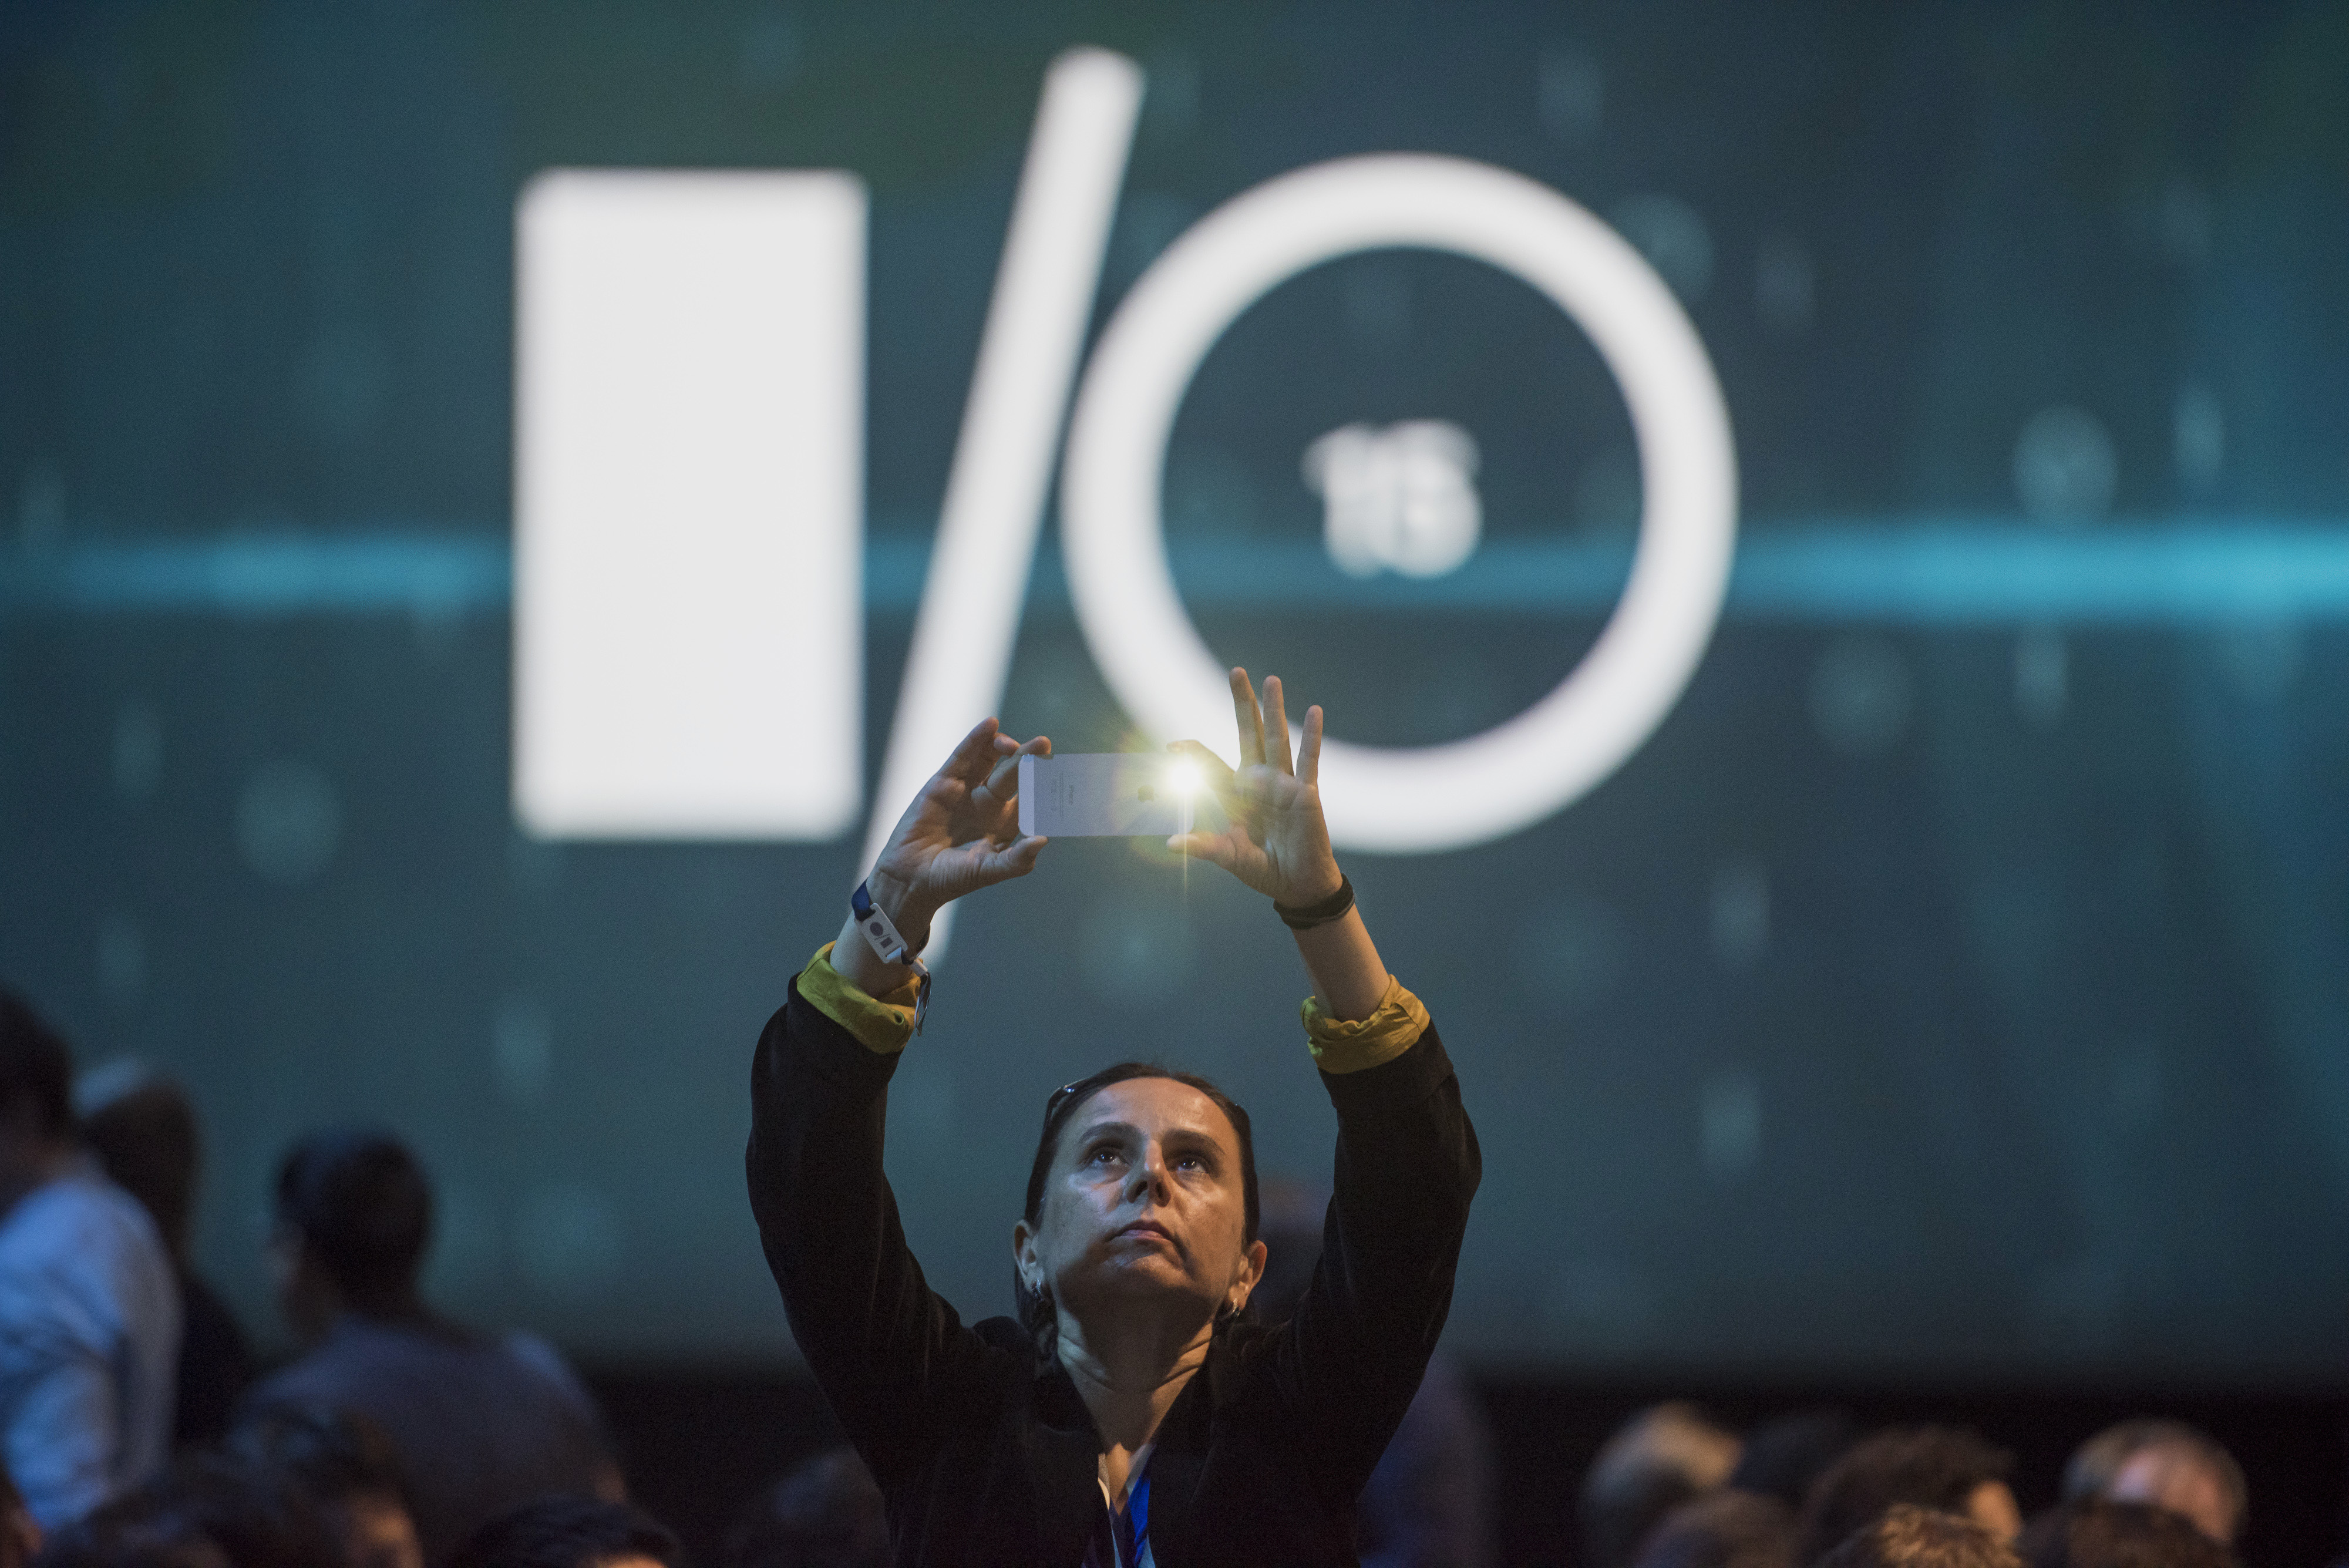 An attendee takes a photograph prior to the Google I/O Annual Developers Conference in San Francisco, California, U.S., on Thursday, May 28, 2014.